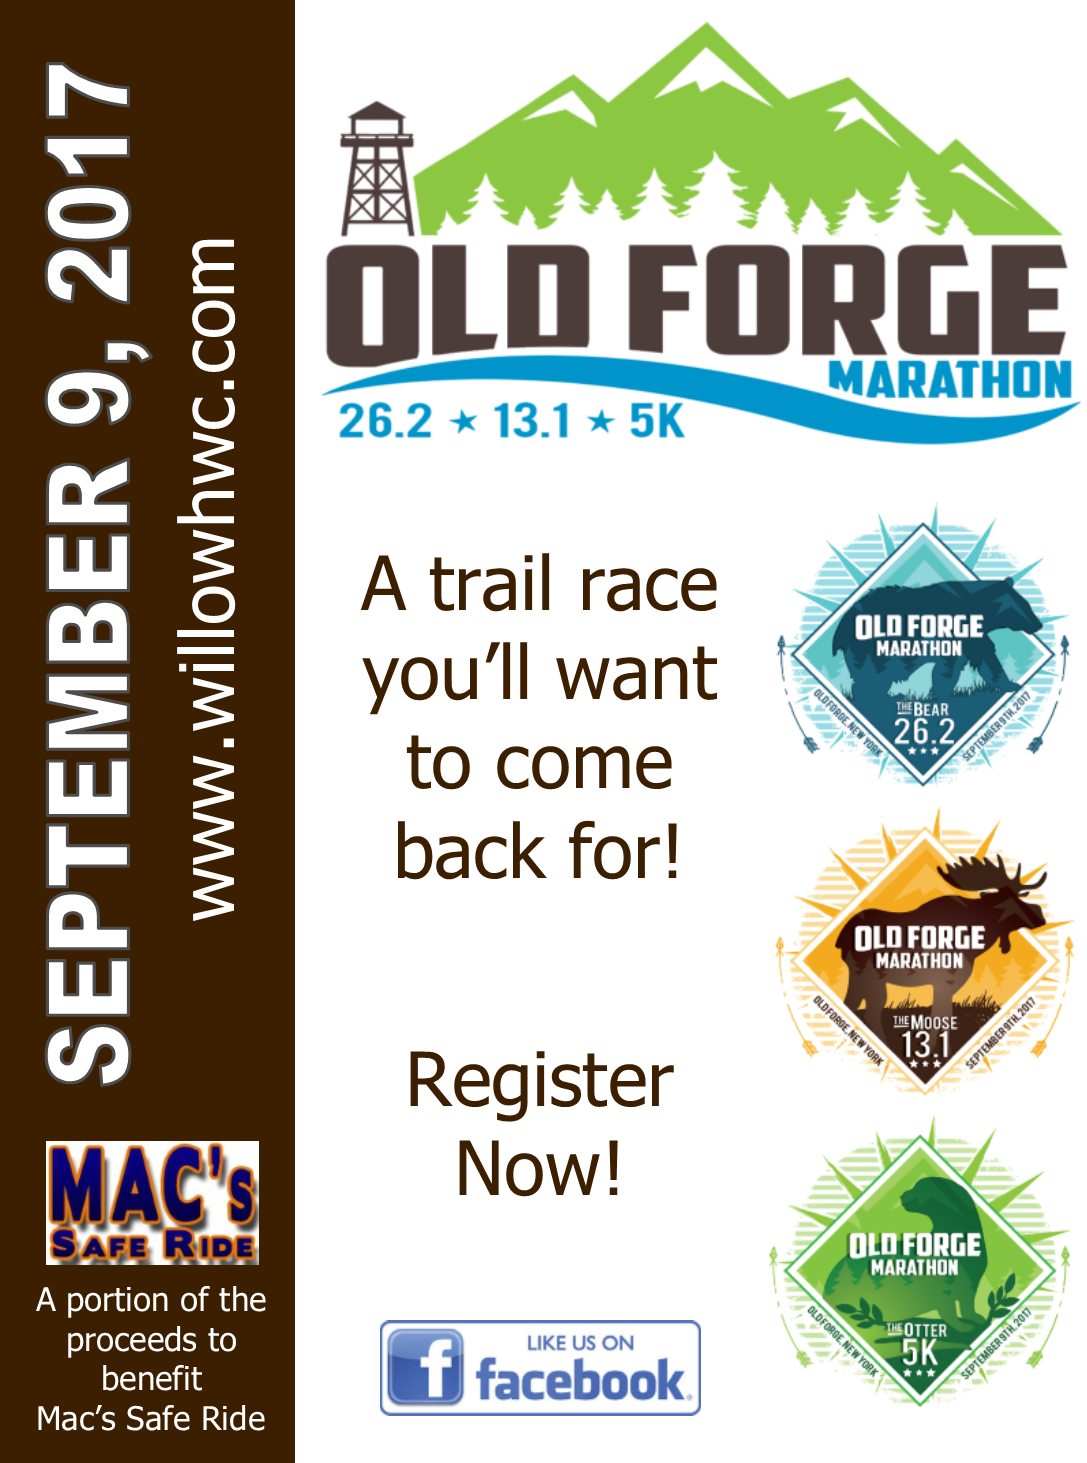 Old Forge Running Race